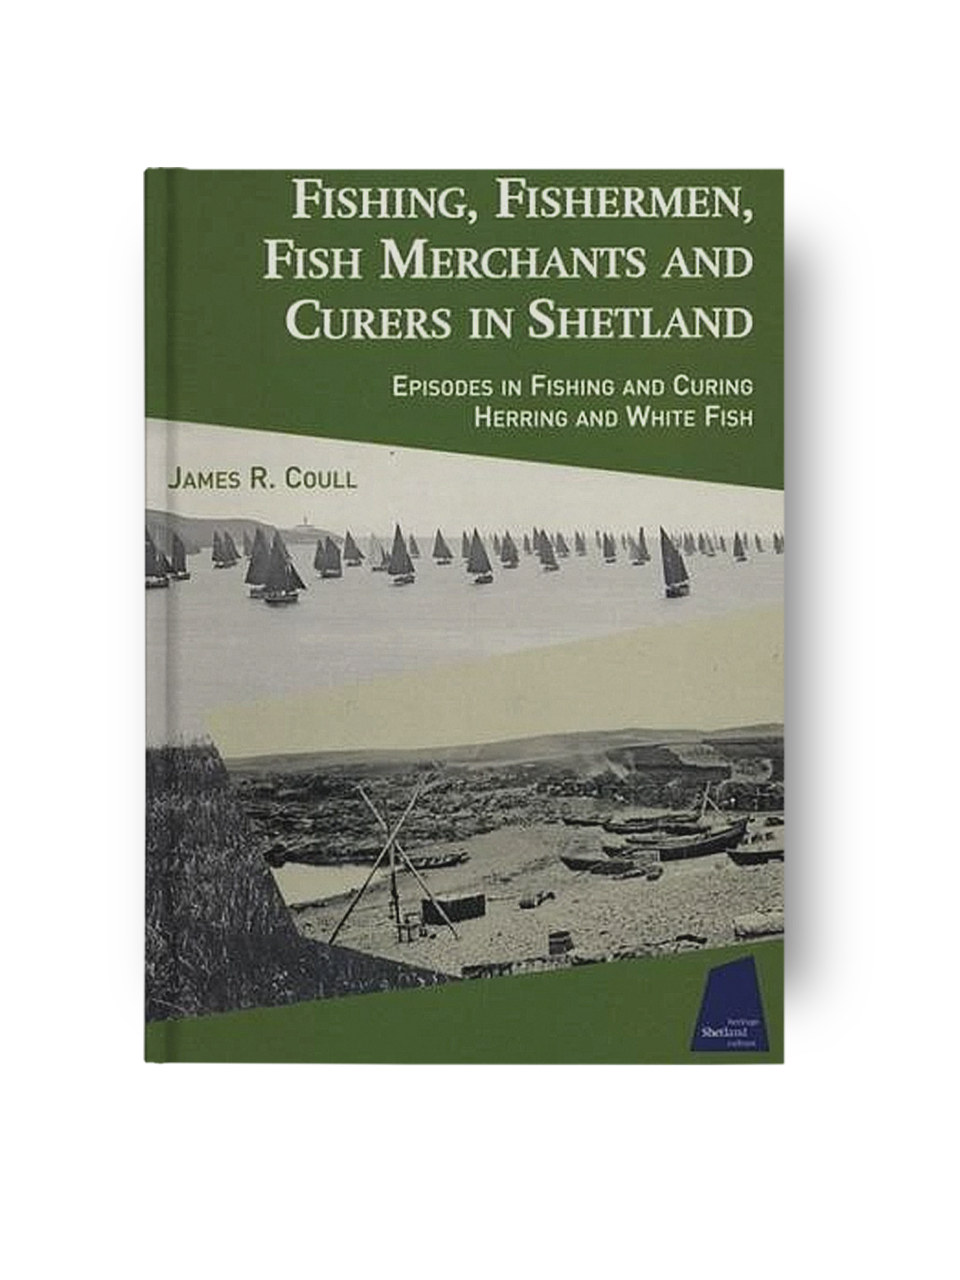 Fishing, Fishermen, Fish Merchants and Curers in Shetland: Episodes in Fishing and Curing Herring and Whitefish - James R. Coull